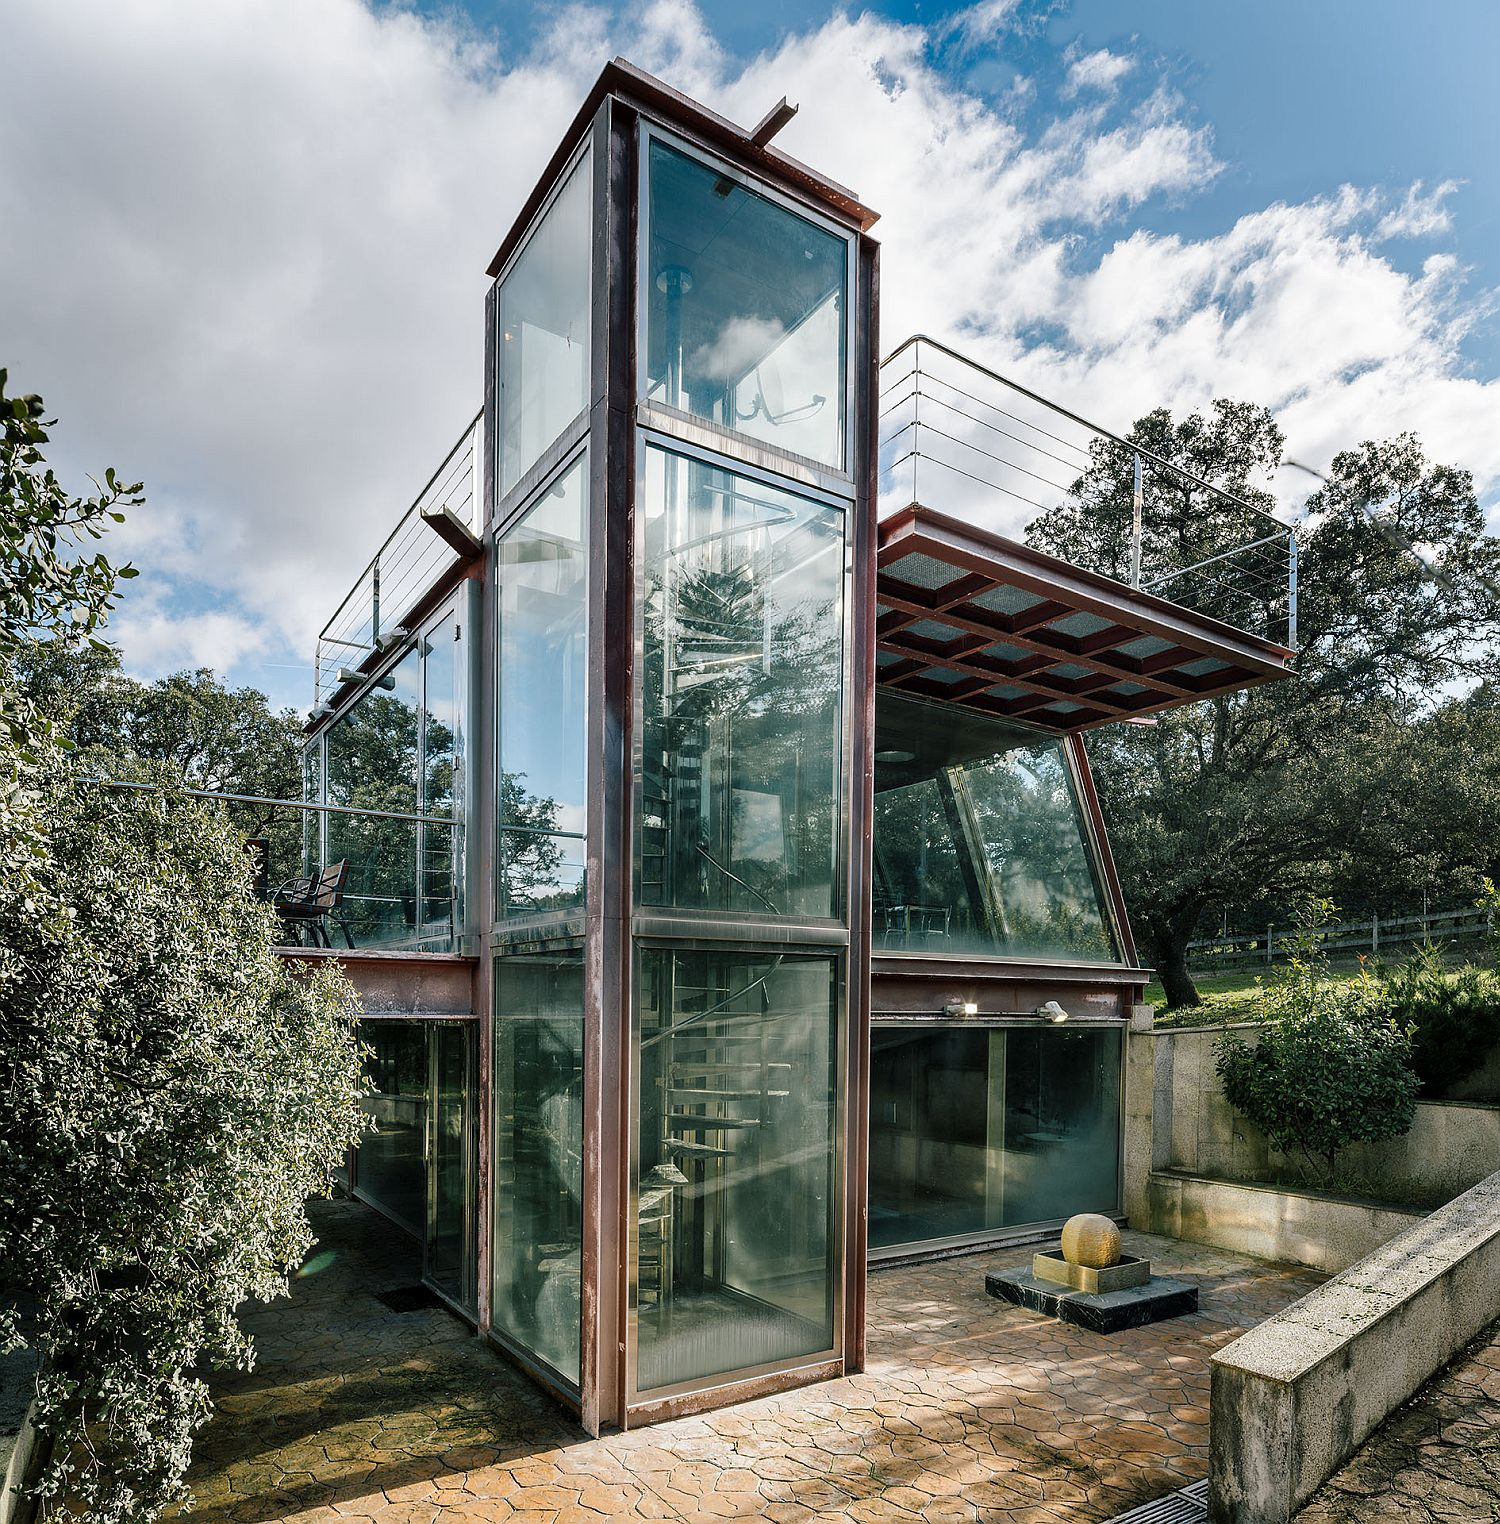 Metal-and-glass-structure-on-forest-clearing-overlooks-a-small-waterfall